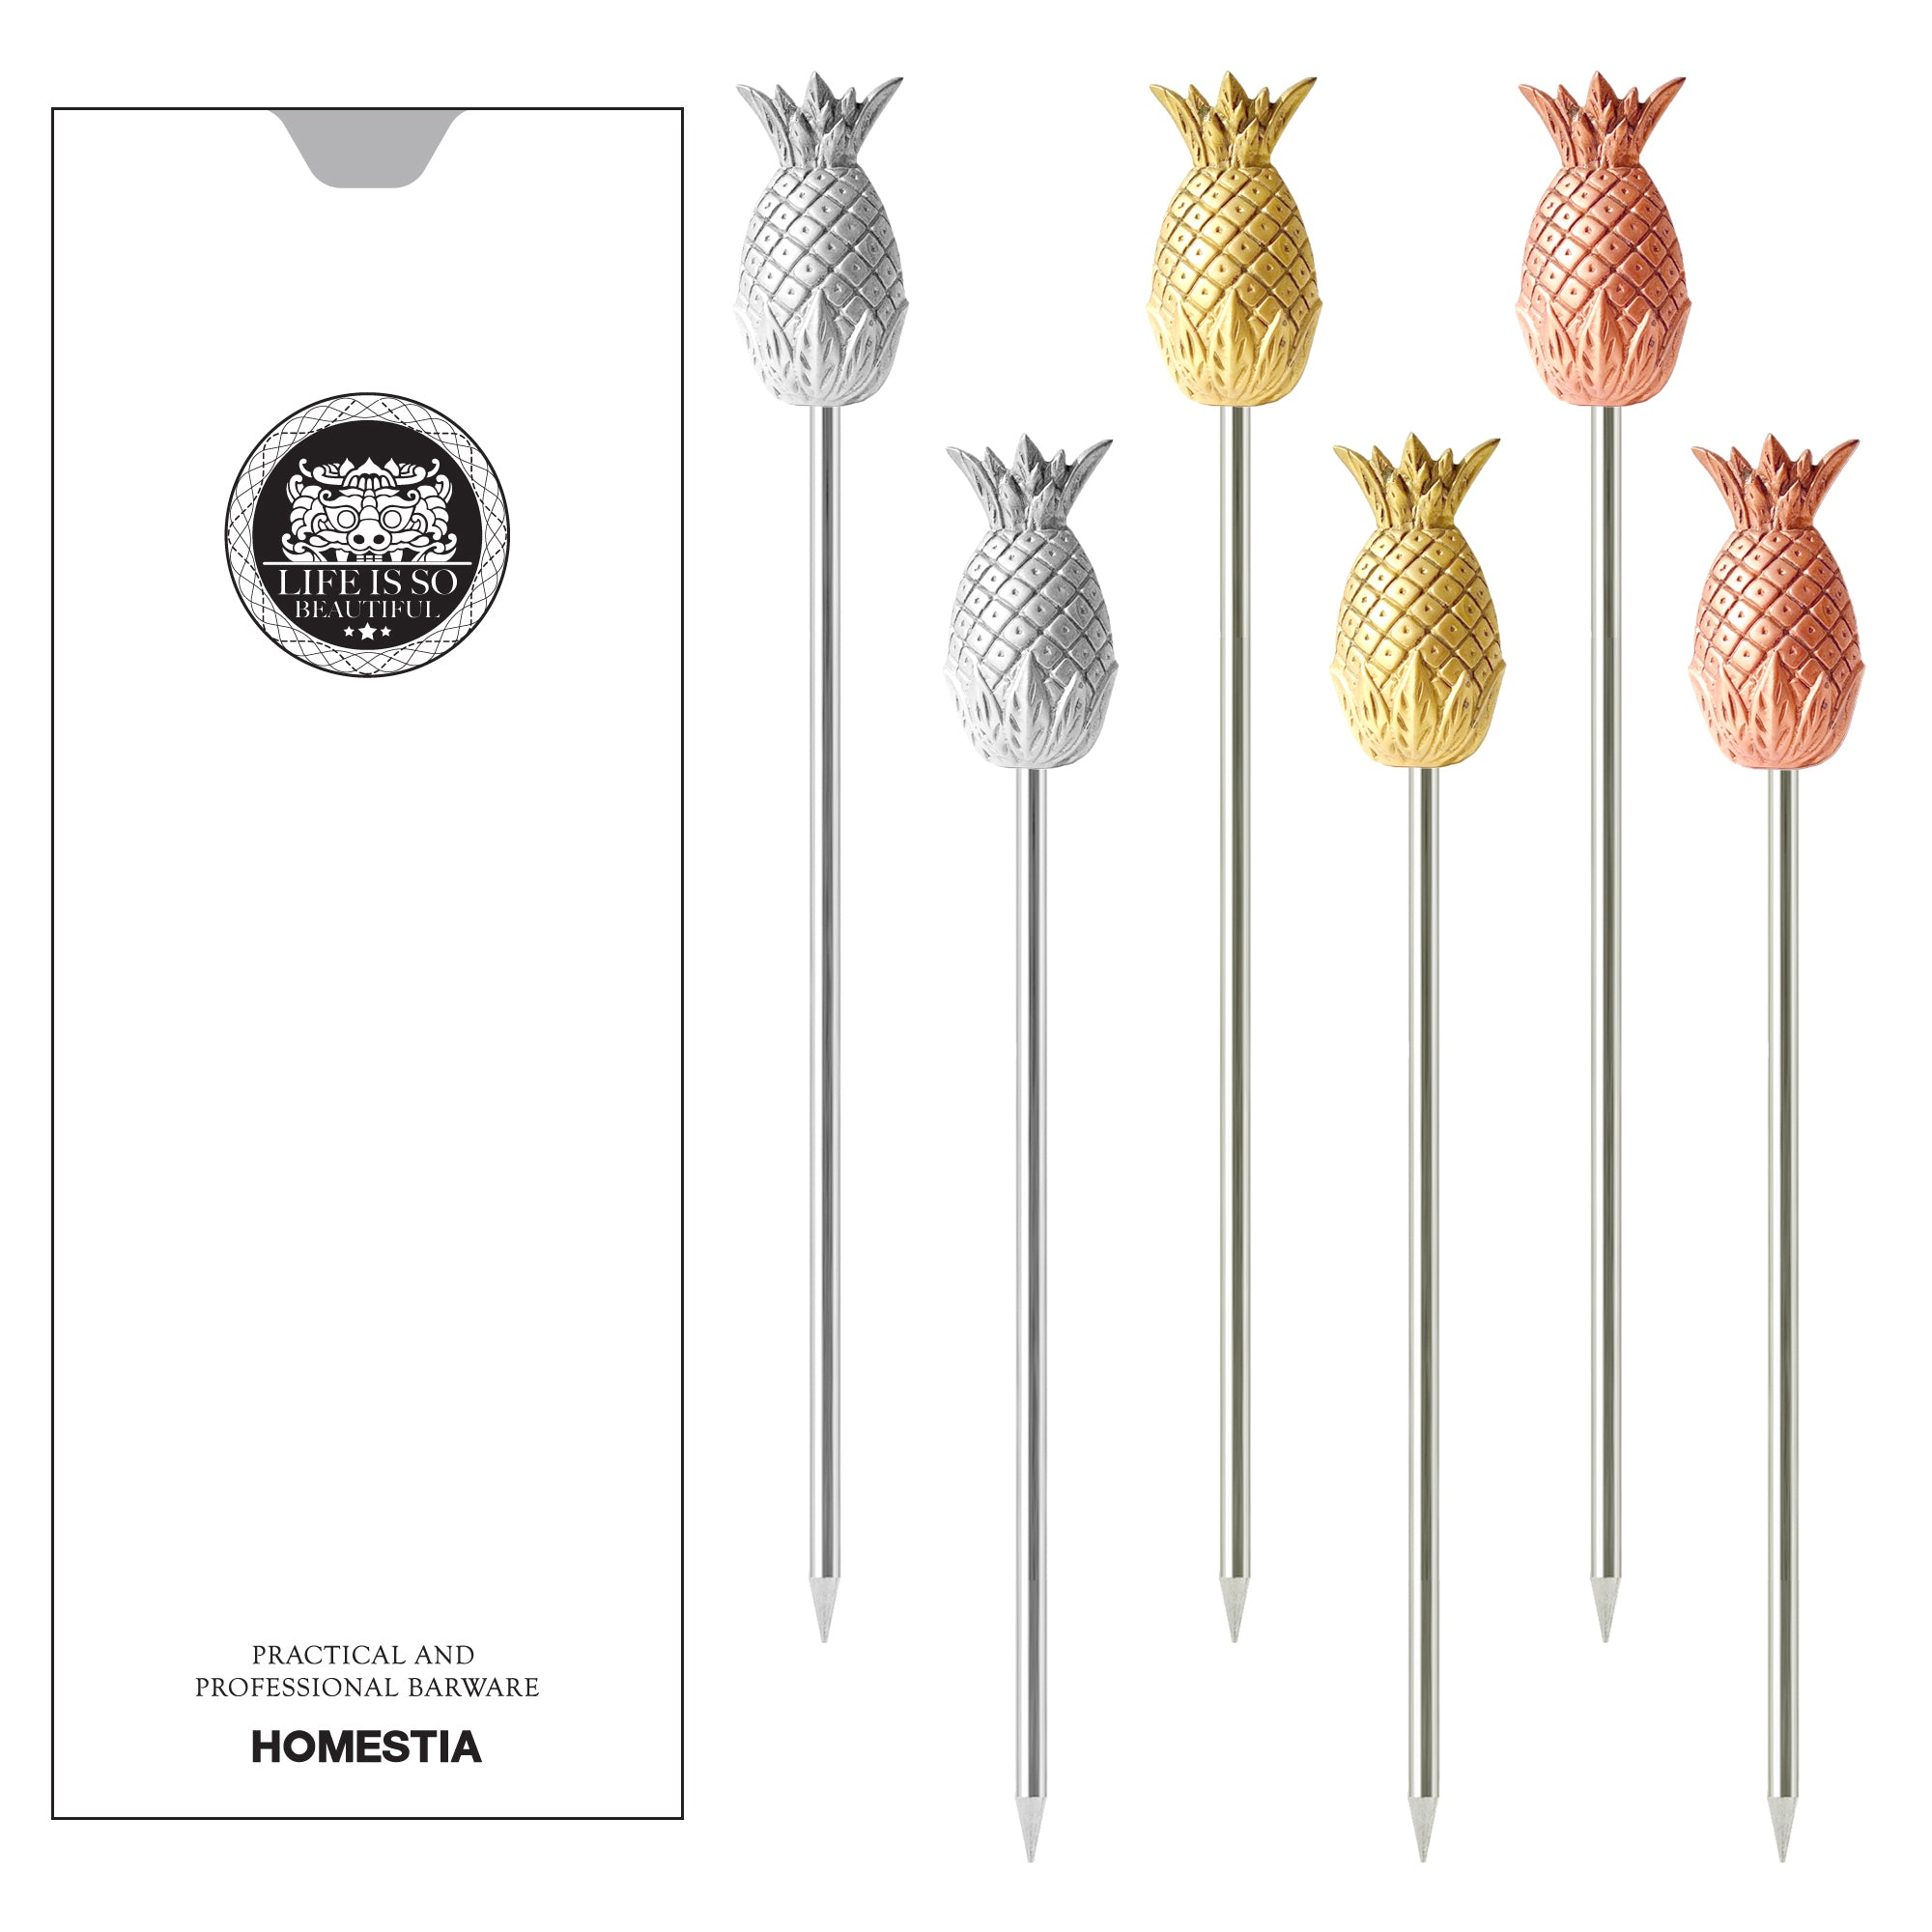 3-Colors Pineapple Series Cocktail Picks Reusable Stainless Steel Cocktail Skewer Martini Picks Set of 6 Homestia®